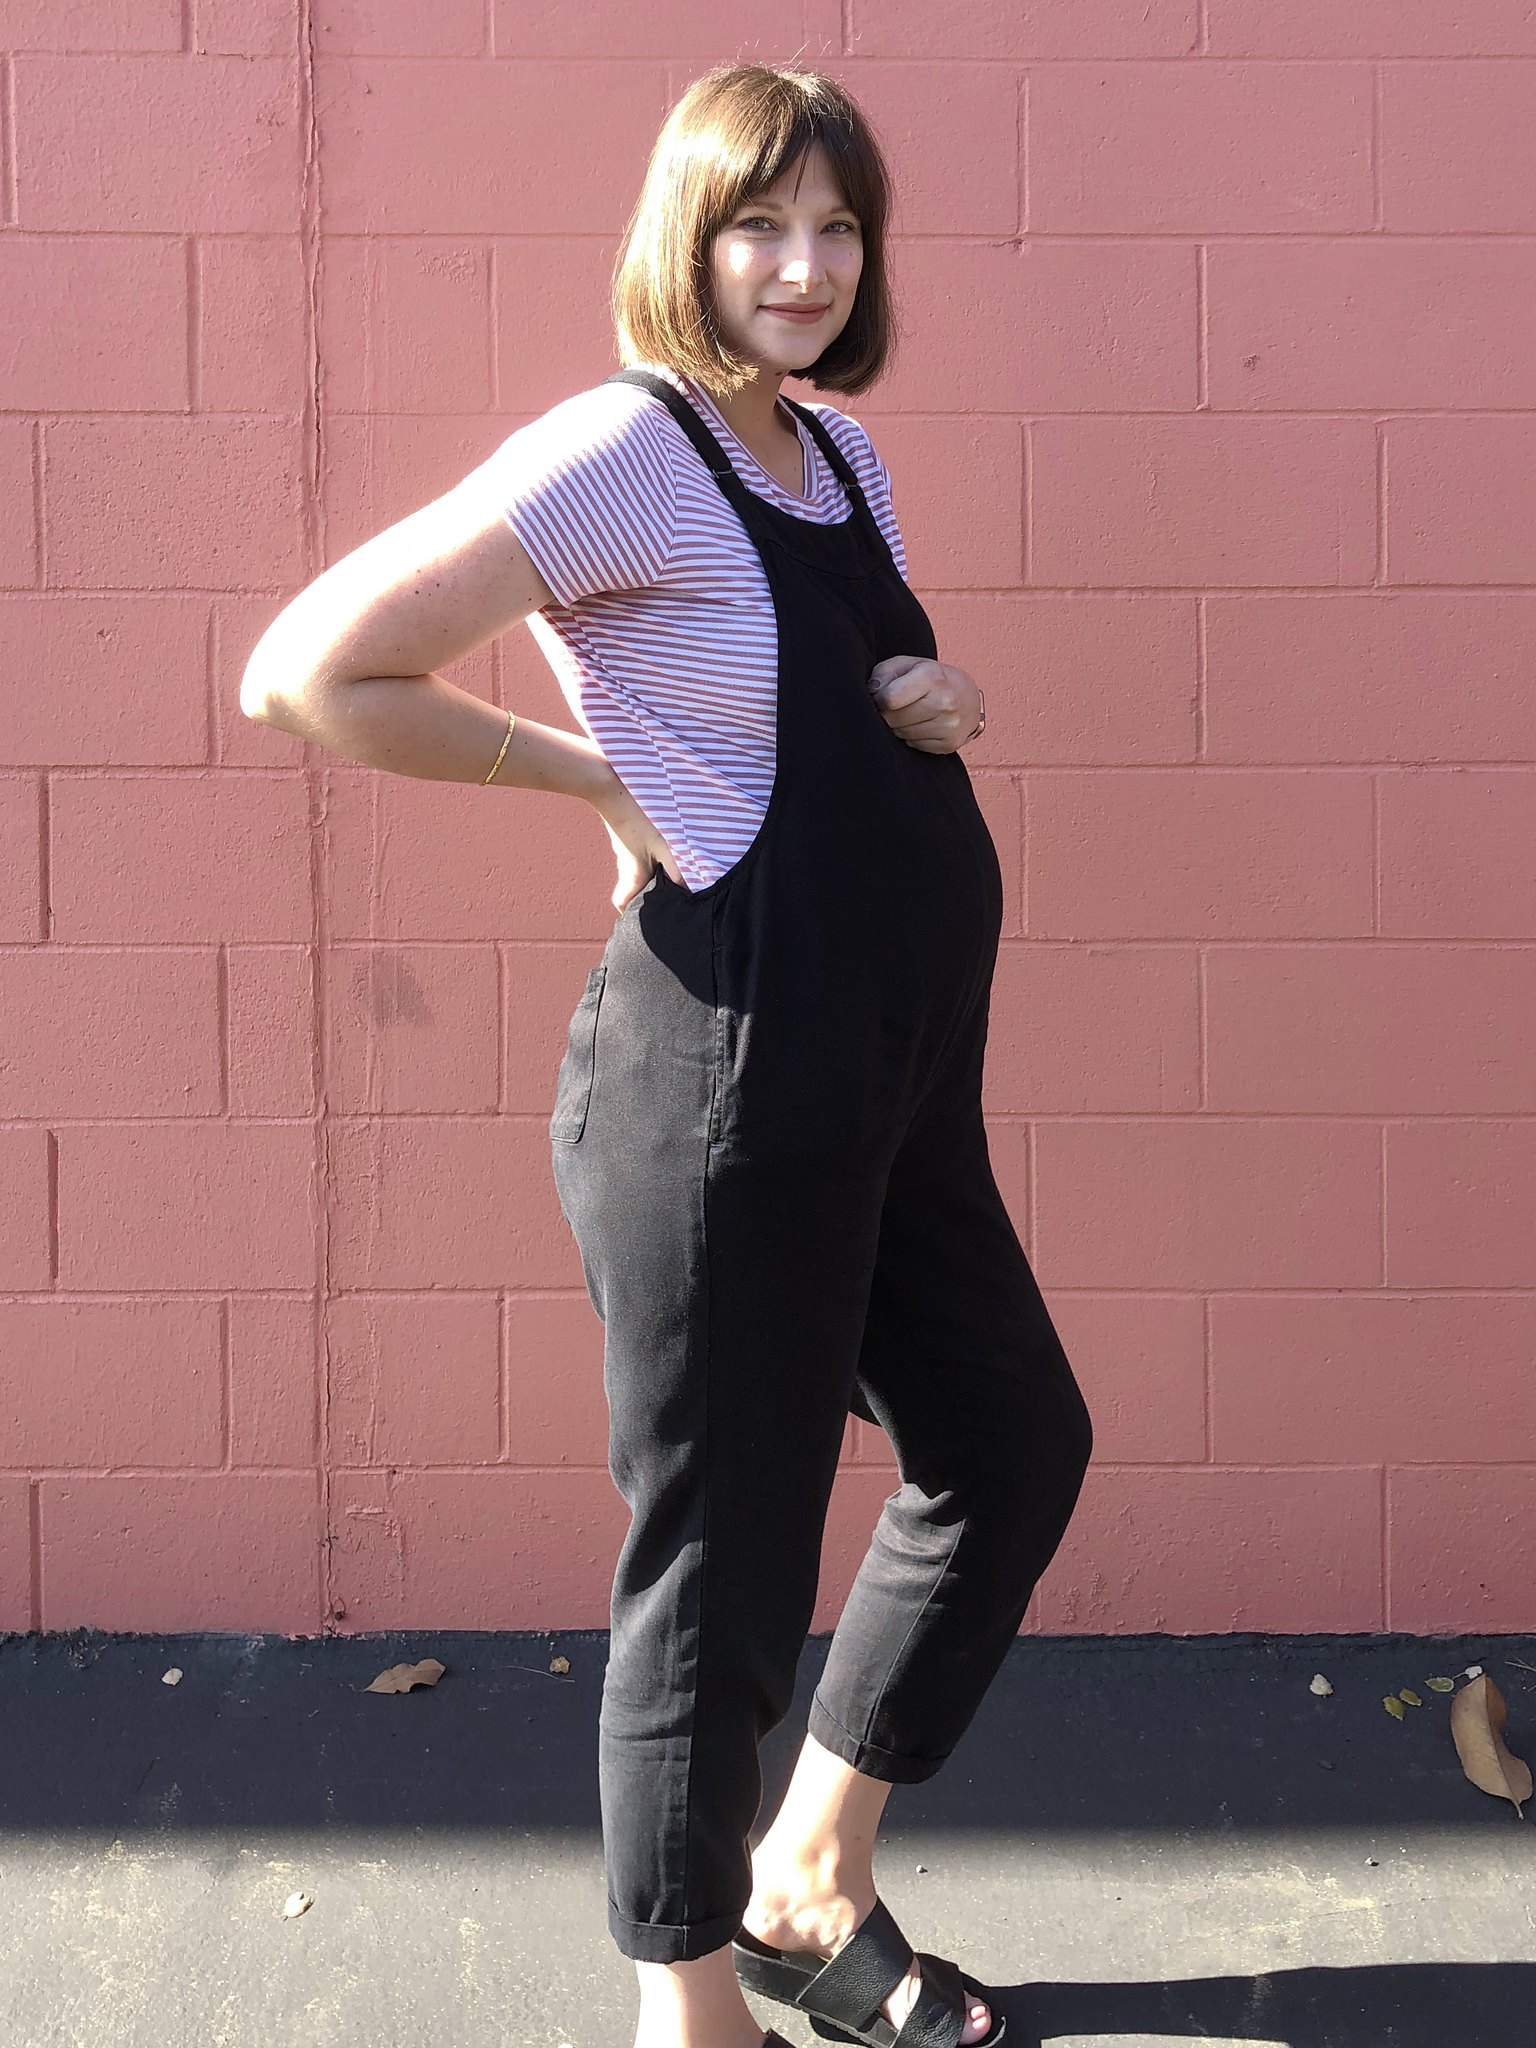 Toddler girl, toddler girl fashion, Maternity fashion, Pregnancy style, maternity dungarees, Mom blog, Pregnancy blog, Mommy blogger, mom life, Candid motherhood, Girl mom, Fashion blogger, Bay Area blogger,